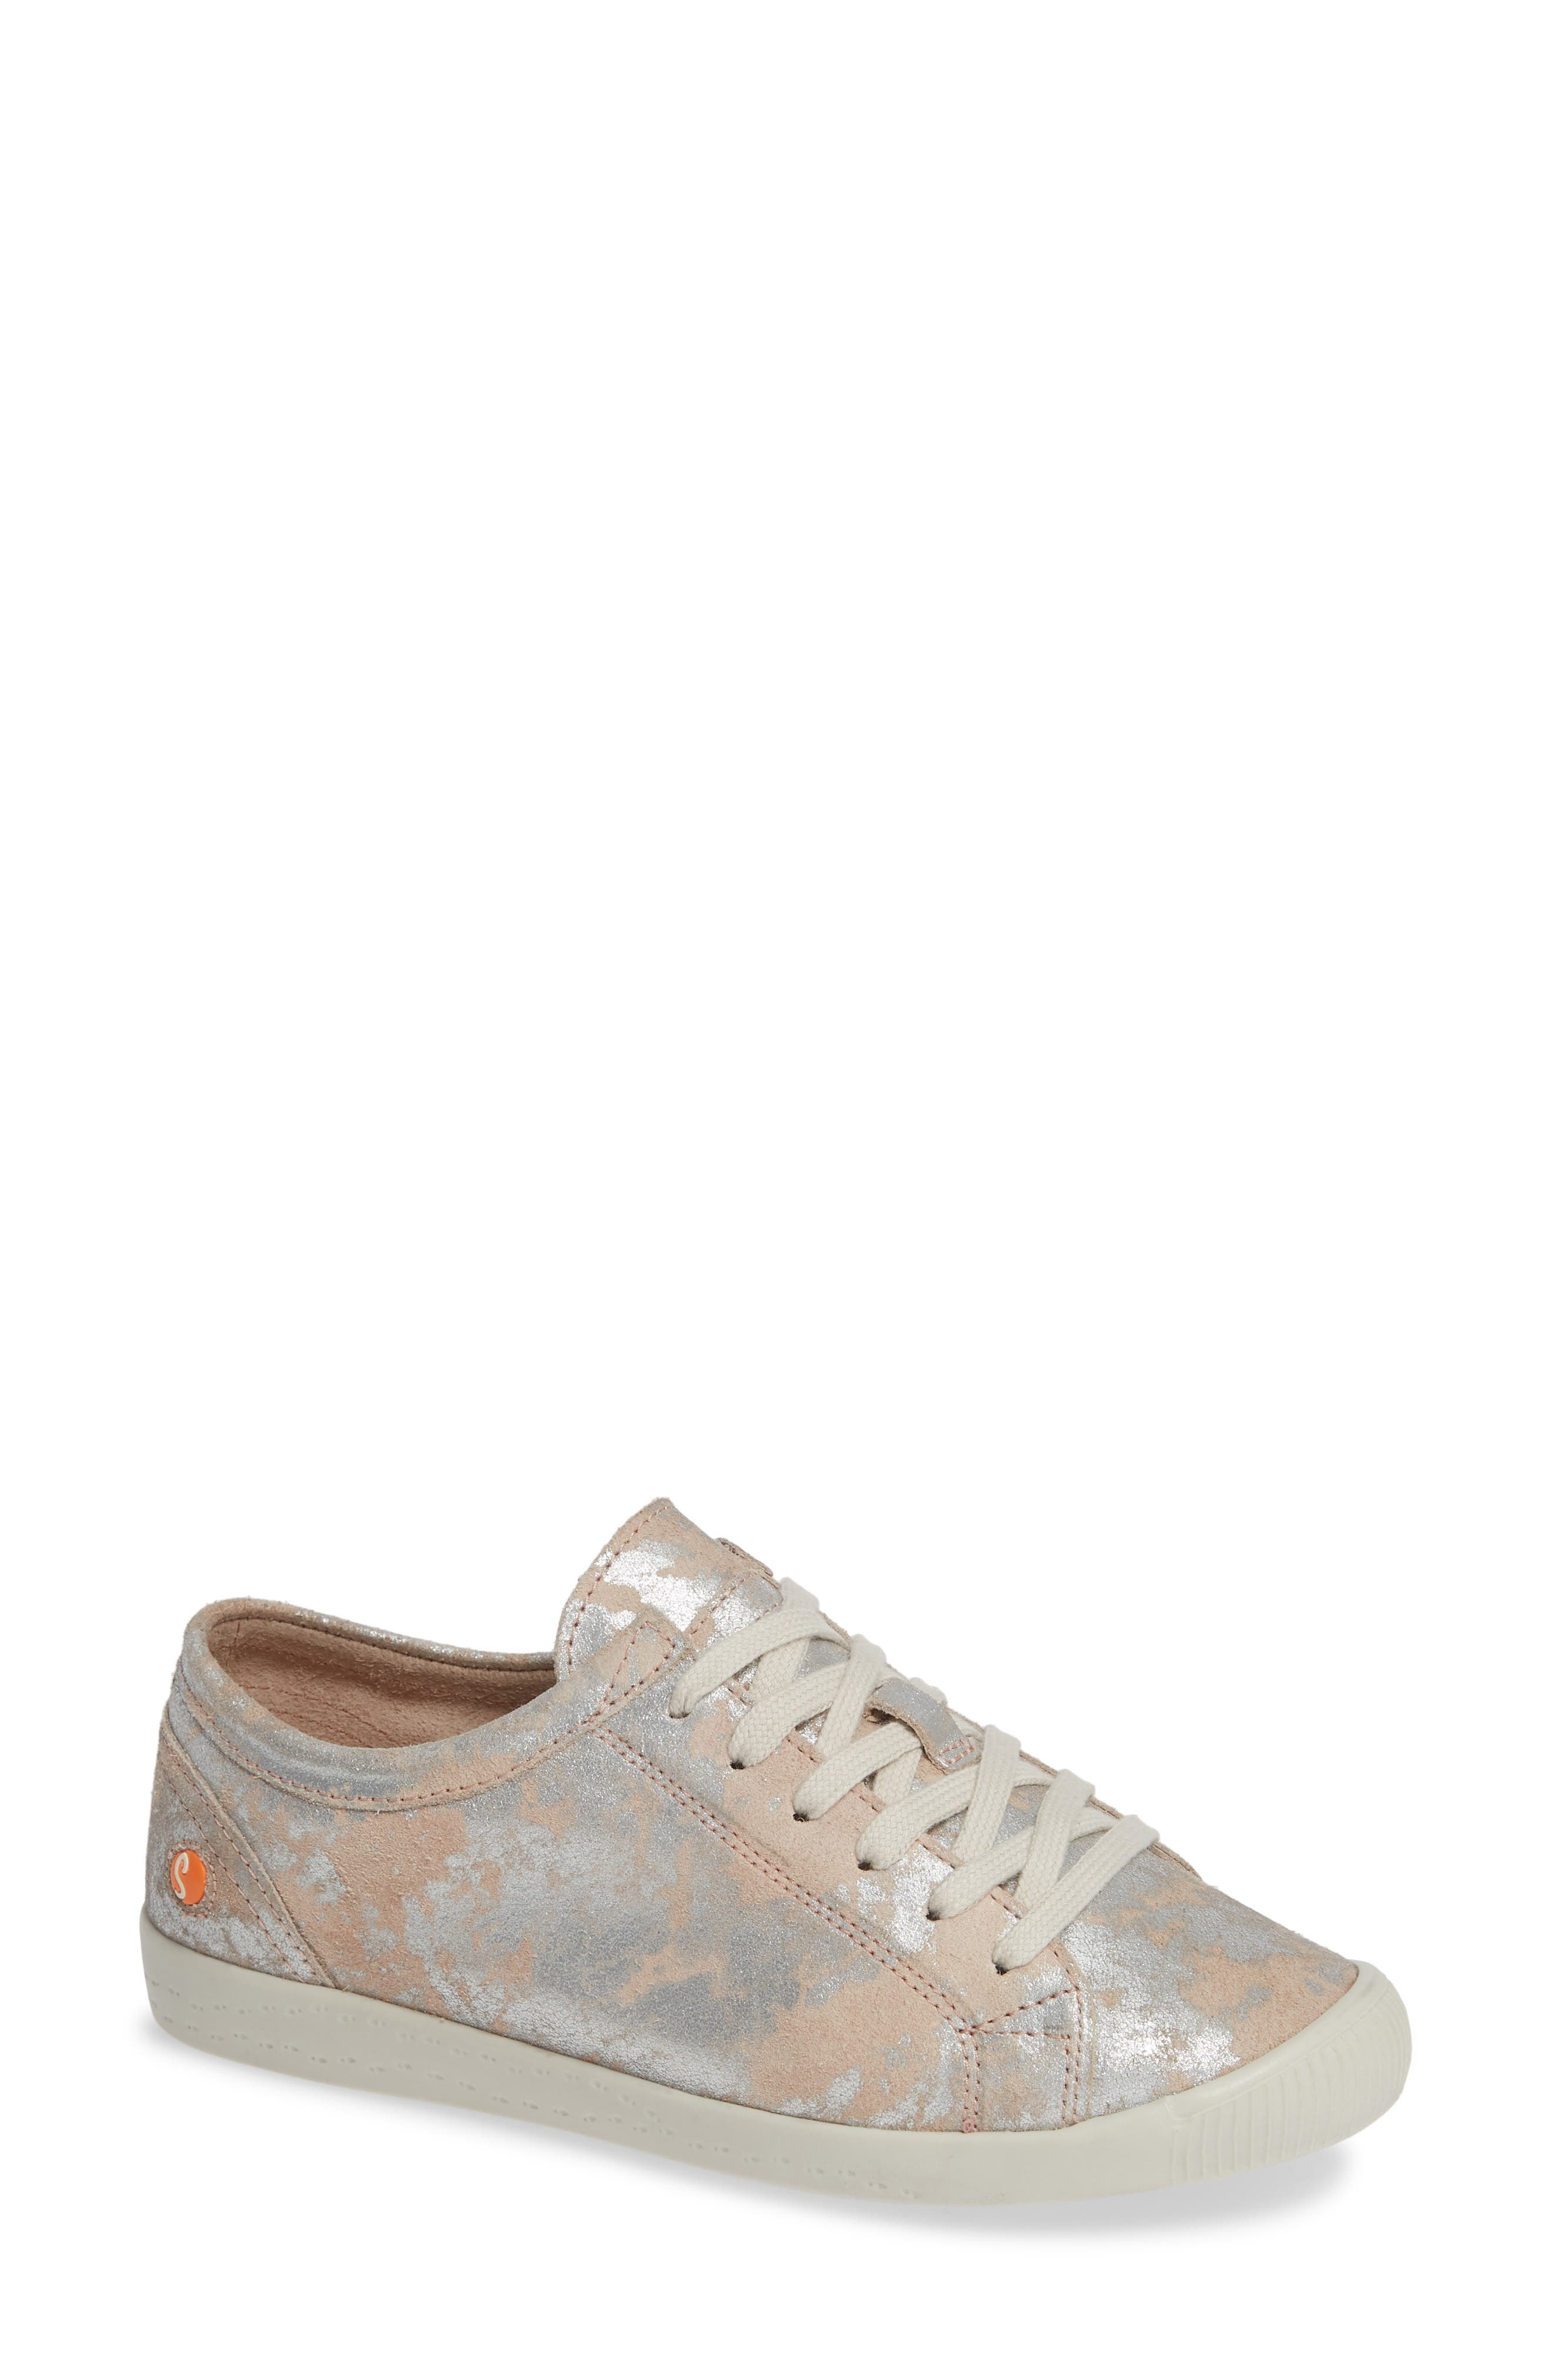 Softinos By Fly London Isla Distressed Sneaker - Pink